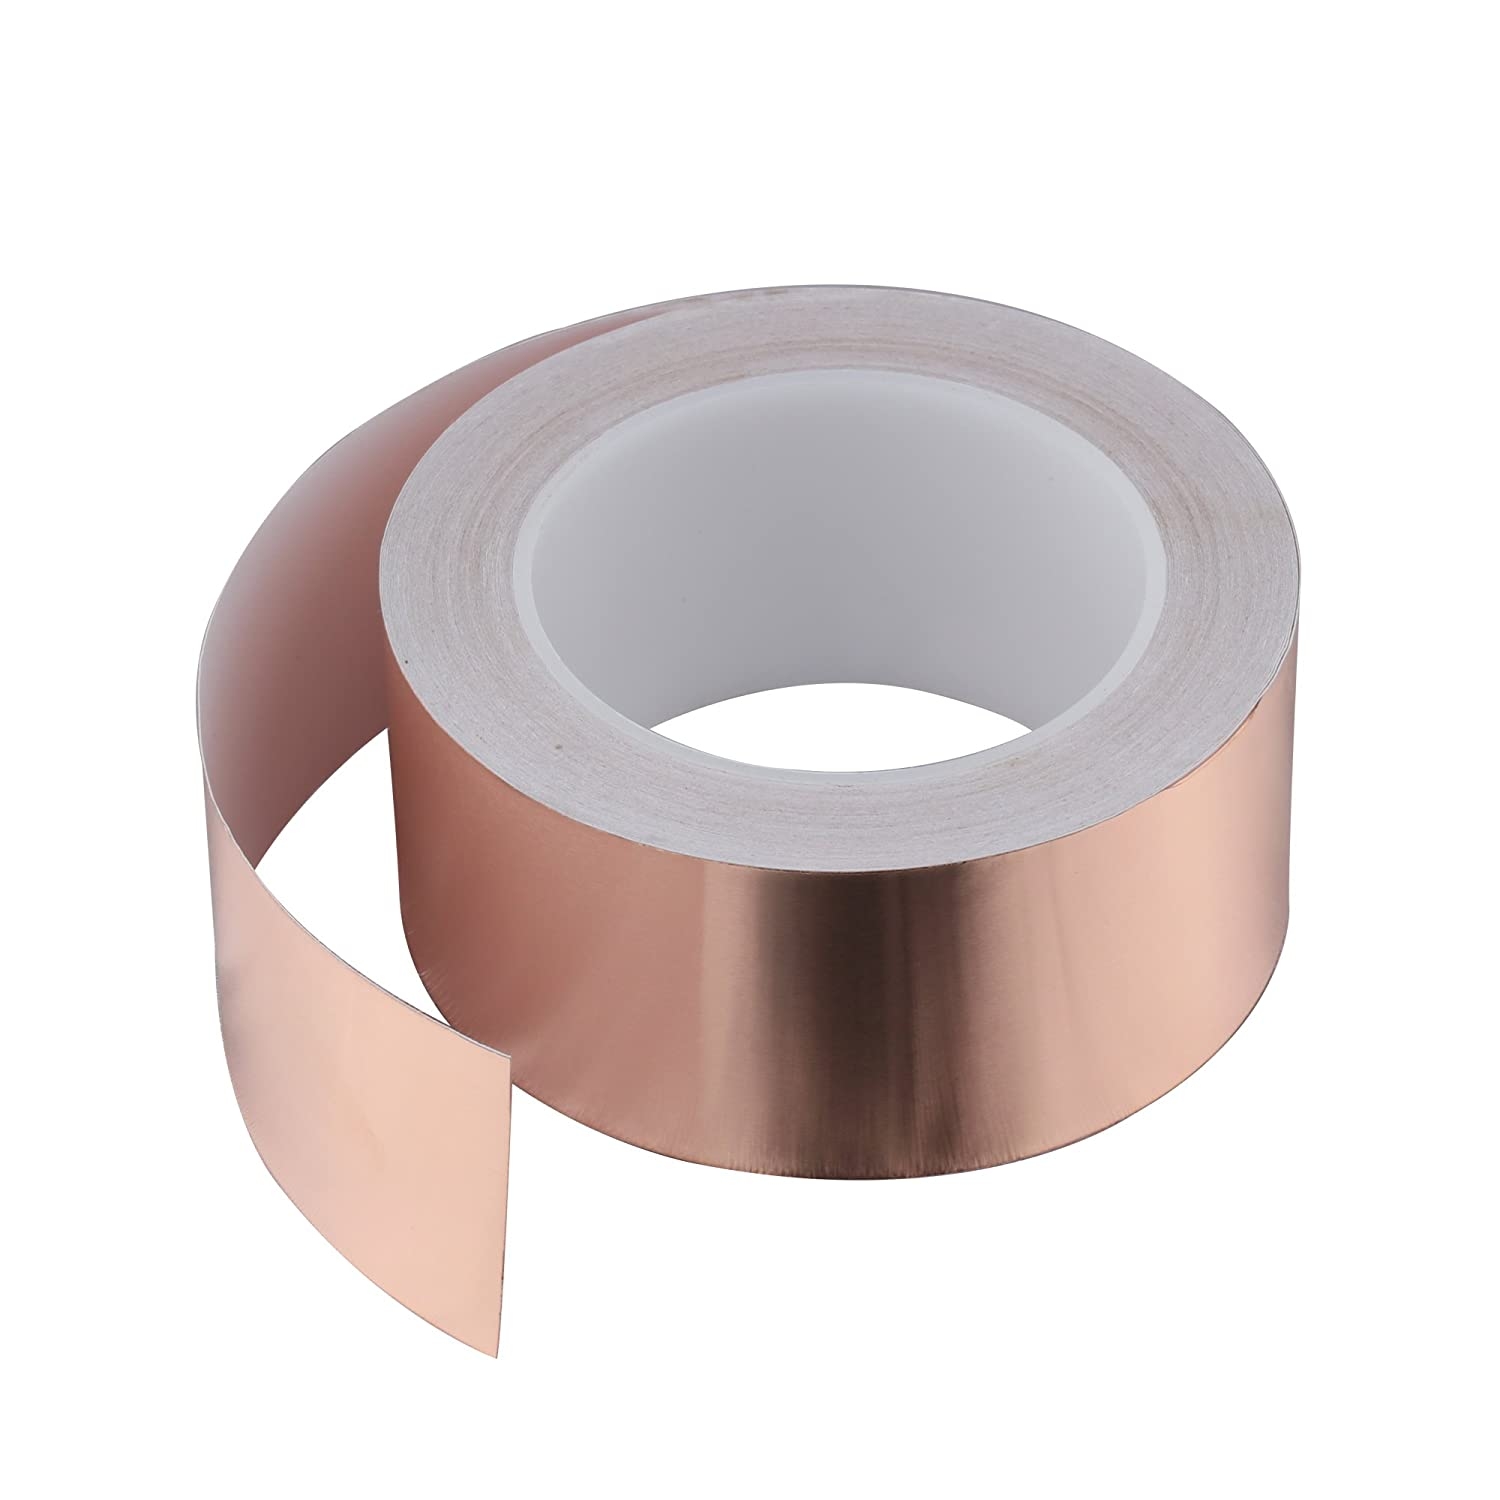 SYCEES 25M x 50mm EMI Kapton Tape Self Adhesive Extra Long Copper Foil band Tape EMC Shielding Tape for Electrial Repair Decoration Plants Protection from Snails Screw Guard